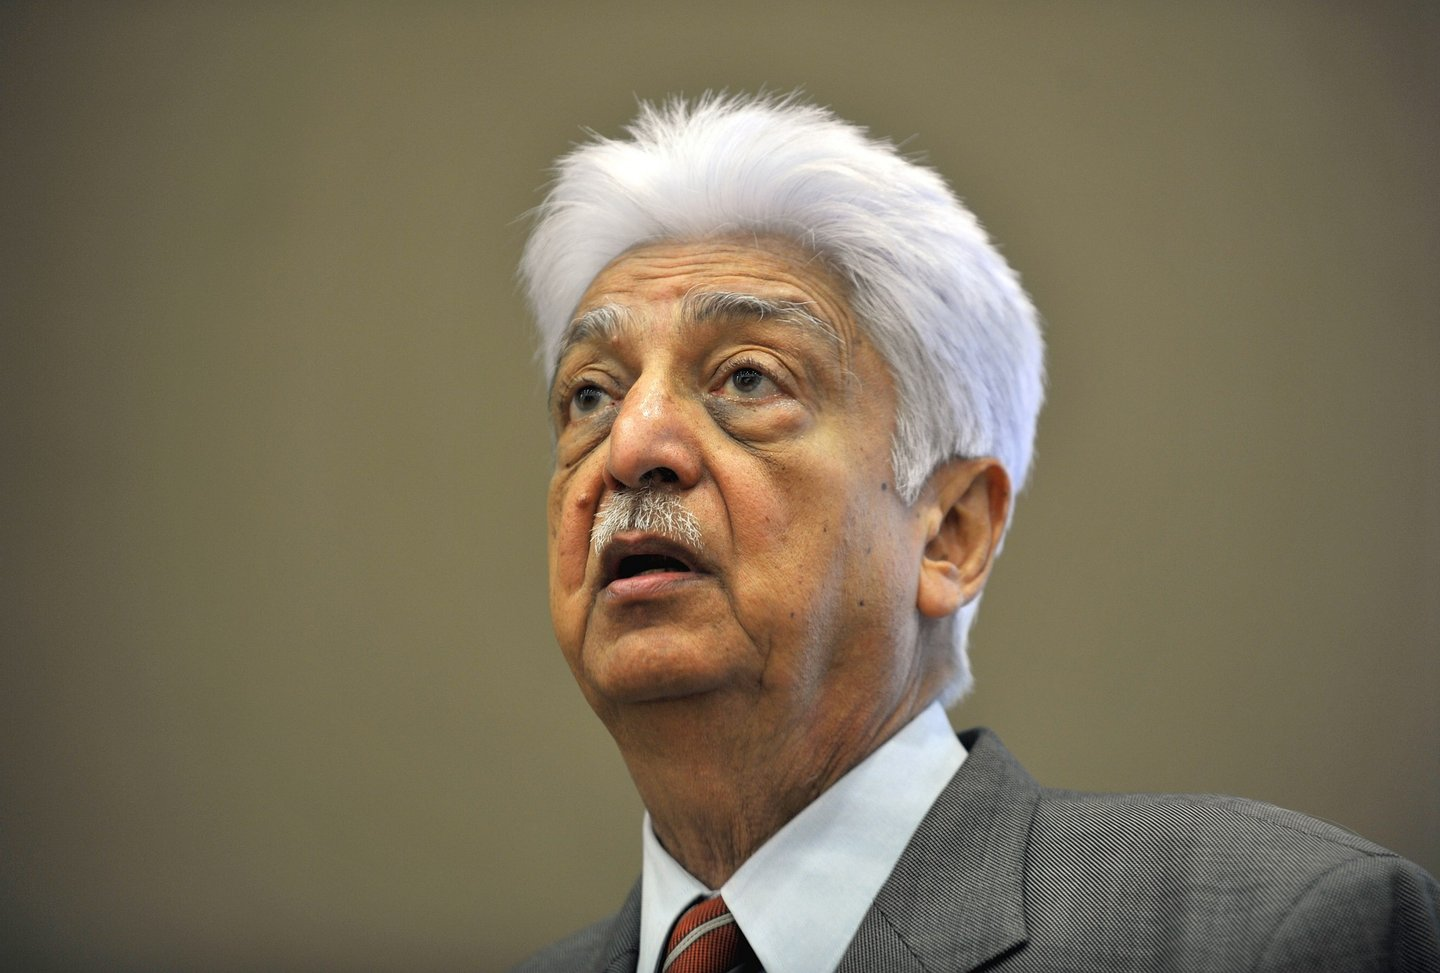 Indian Chairman of Wipro Limited, Azim Premji, speaks during a press conference held to announce the company's 2nd quarter results in Bangalore on November 2, 2012. India's third-largest outsourcing firm Wipro reported second-quarter net profit jumped 24 percent, thanks to stronger demand as customers sought to reduce costs in a weak global economy. AFP PHOTO/ Manjunath KIRAN (Photo credit should read Manjunath Kiran/AFP/Getty Images)